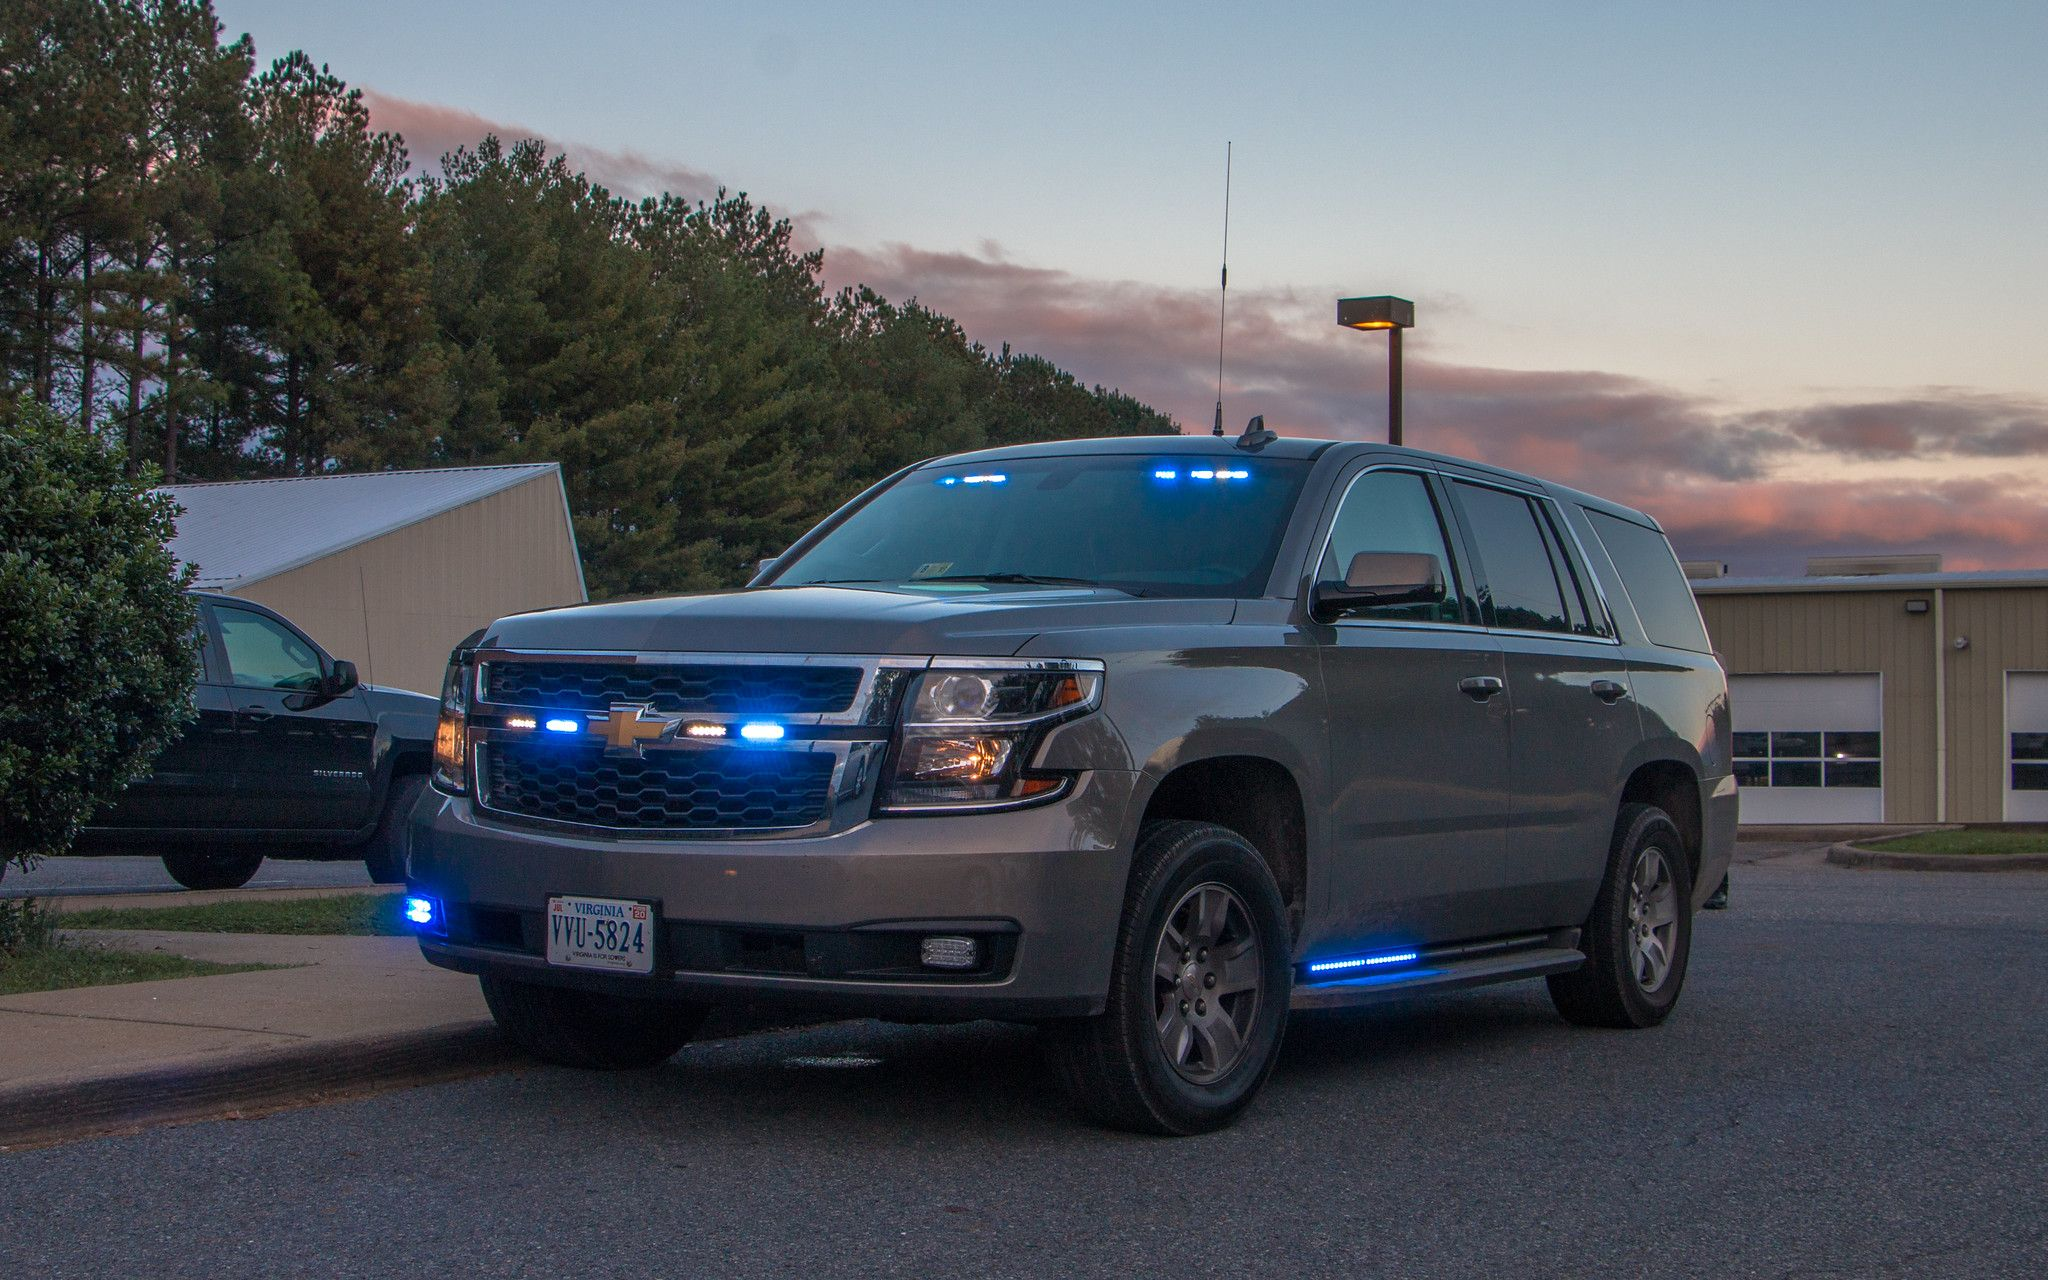 Chevy Tahoe Chevy Tahoe Police Truck Police Cars